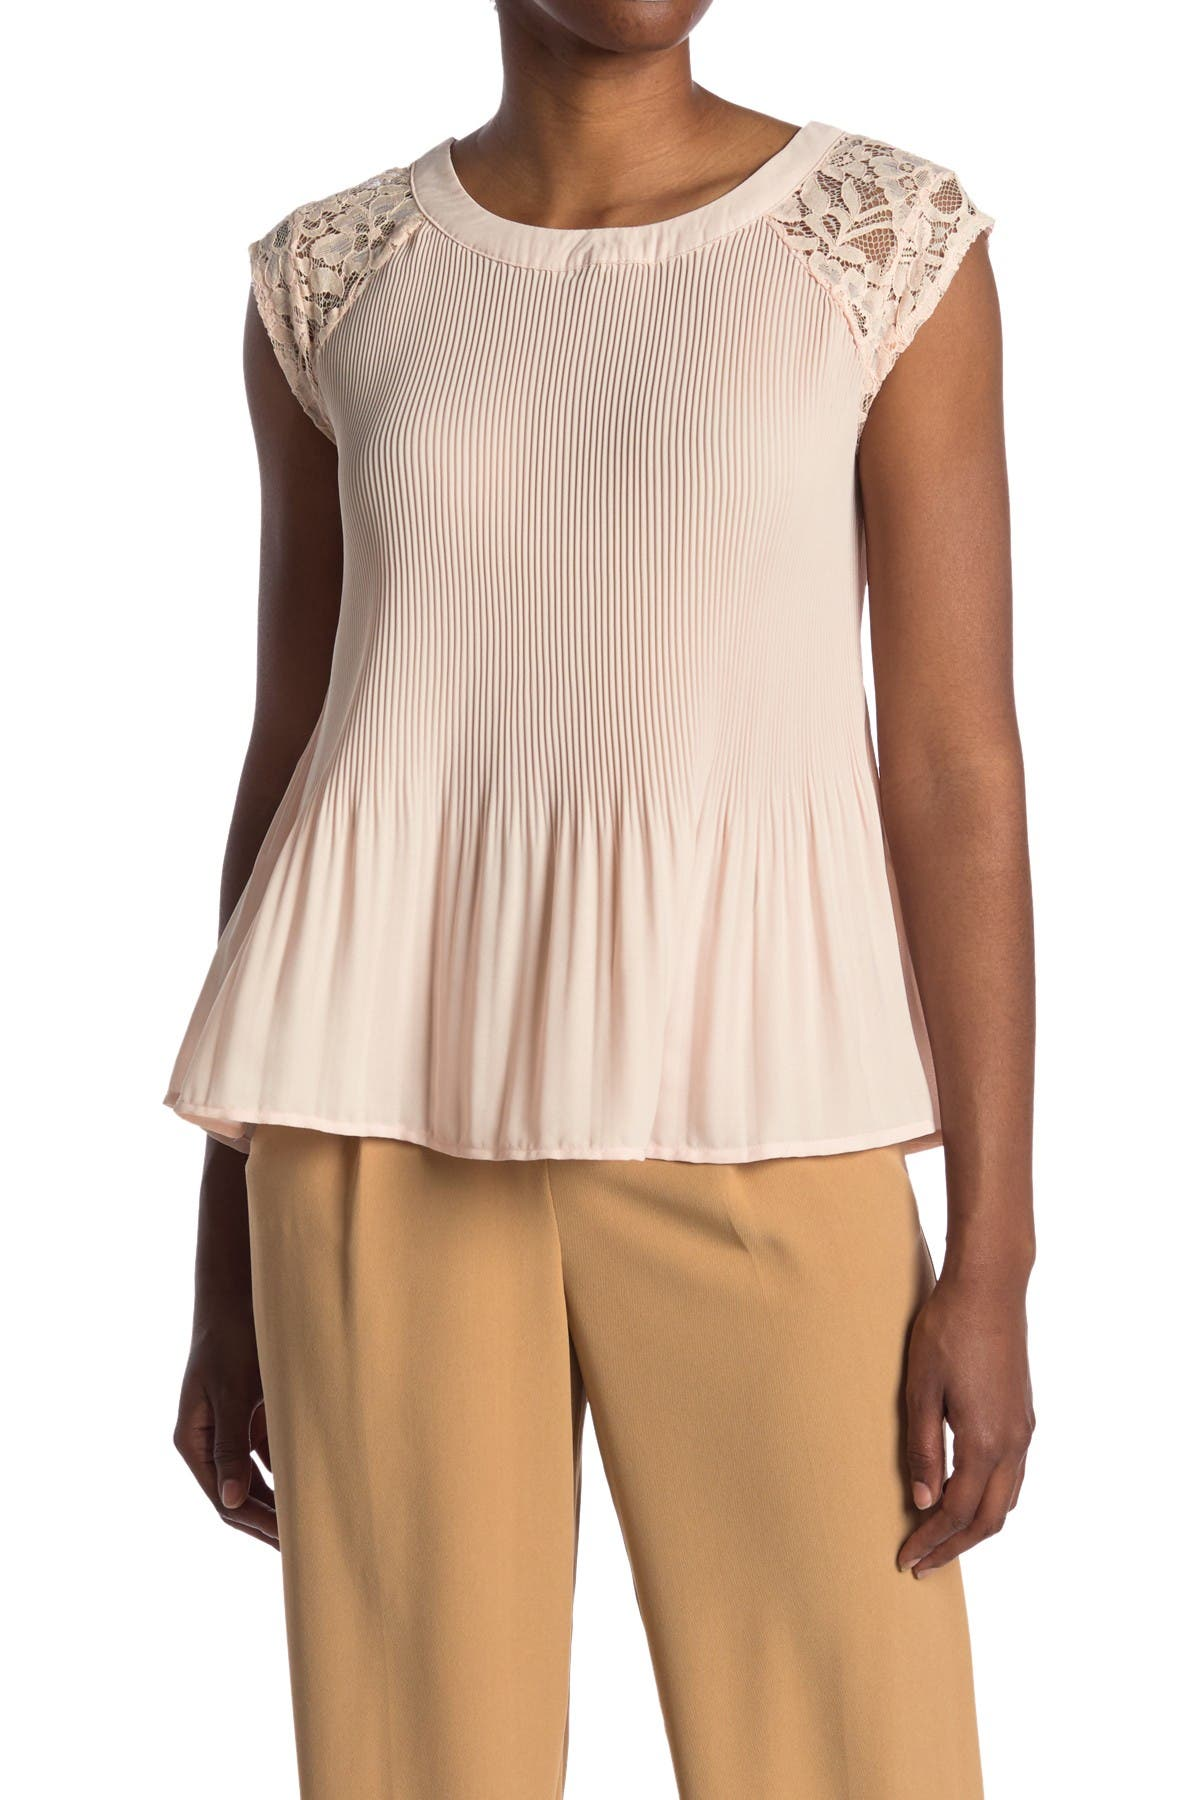 Image of Chenault Woven Lace Shoulder Top